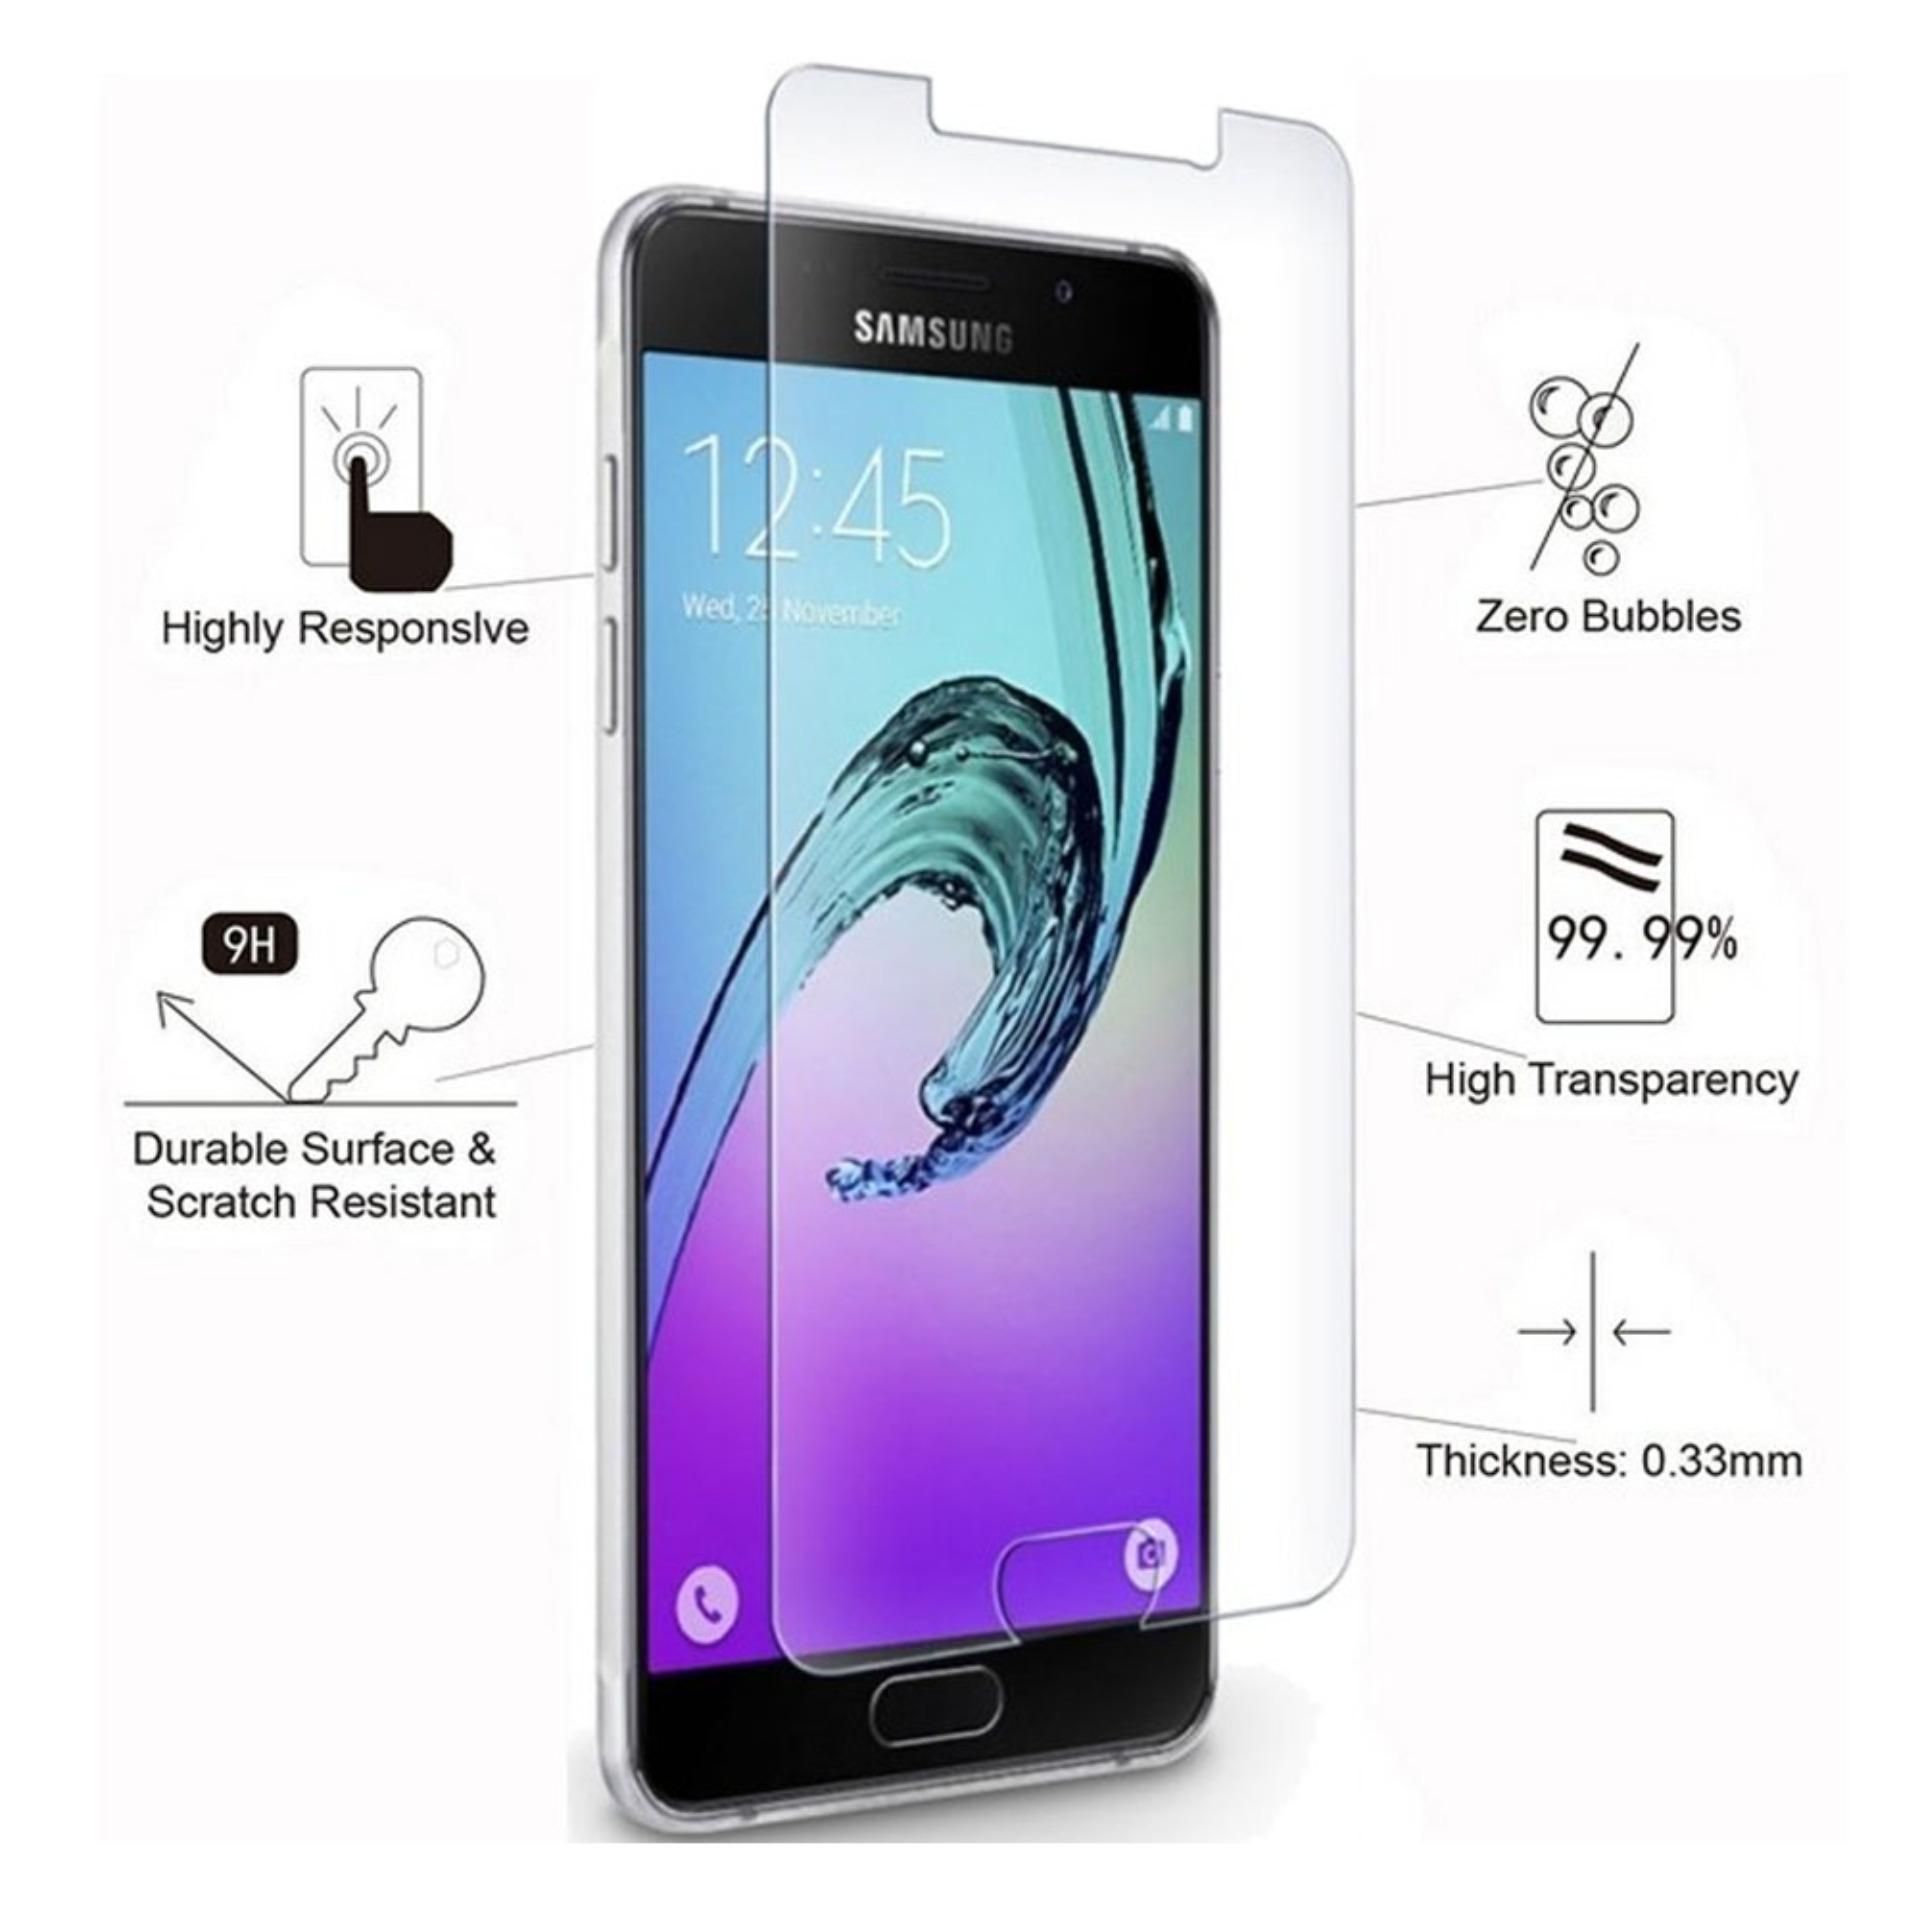 Tempered Glass Samsung Galaxy A3 2016 A310  Screen Protector / Pelindung Layar Tab / Anti-bubbles, Scratch Resistant / Temper Samsung - Clear